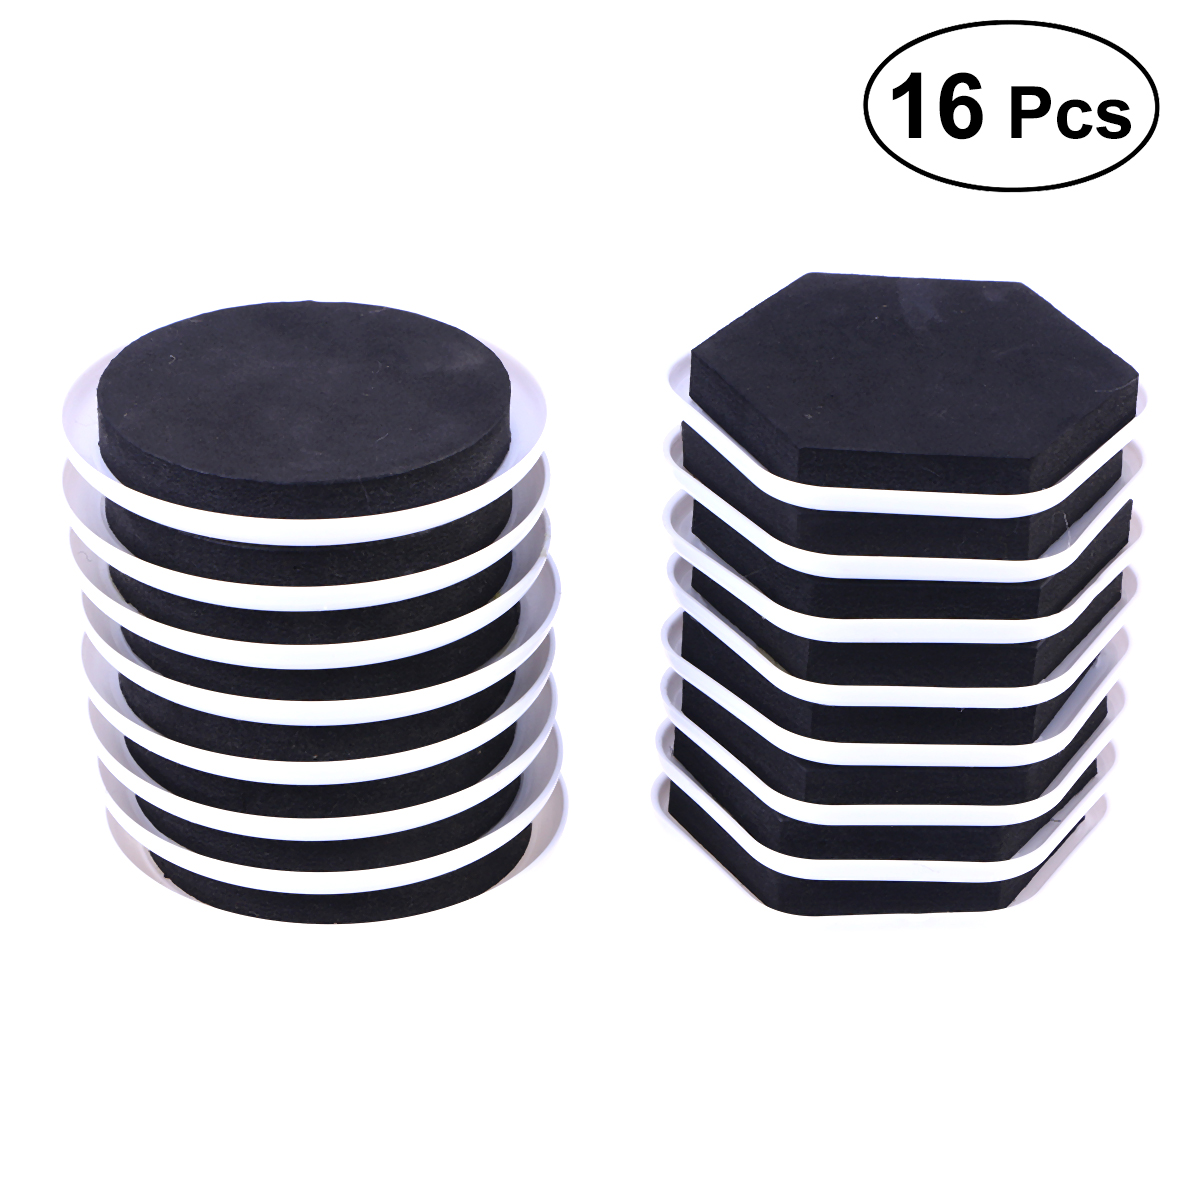 16 Pcs Furniture Sliders Tough Efficient Durable Helpful Reusable Furniture Movers For Moving Heavy Furnitures Sundries